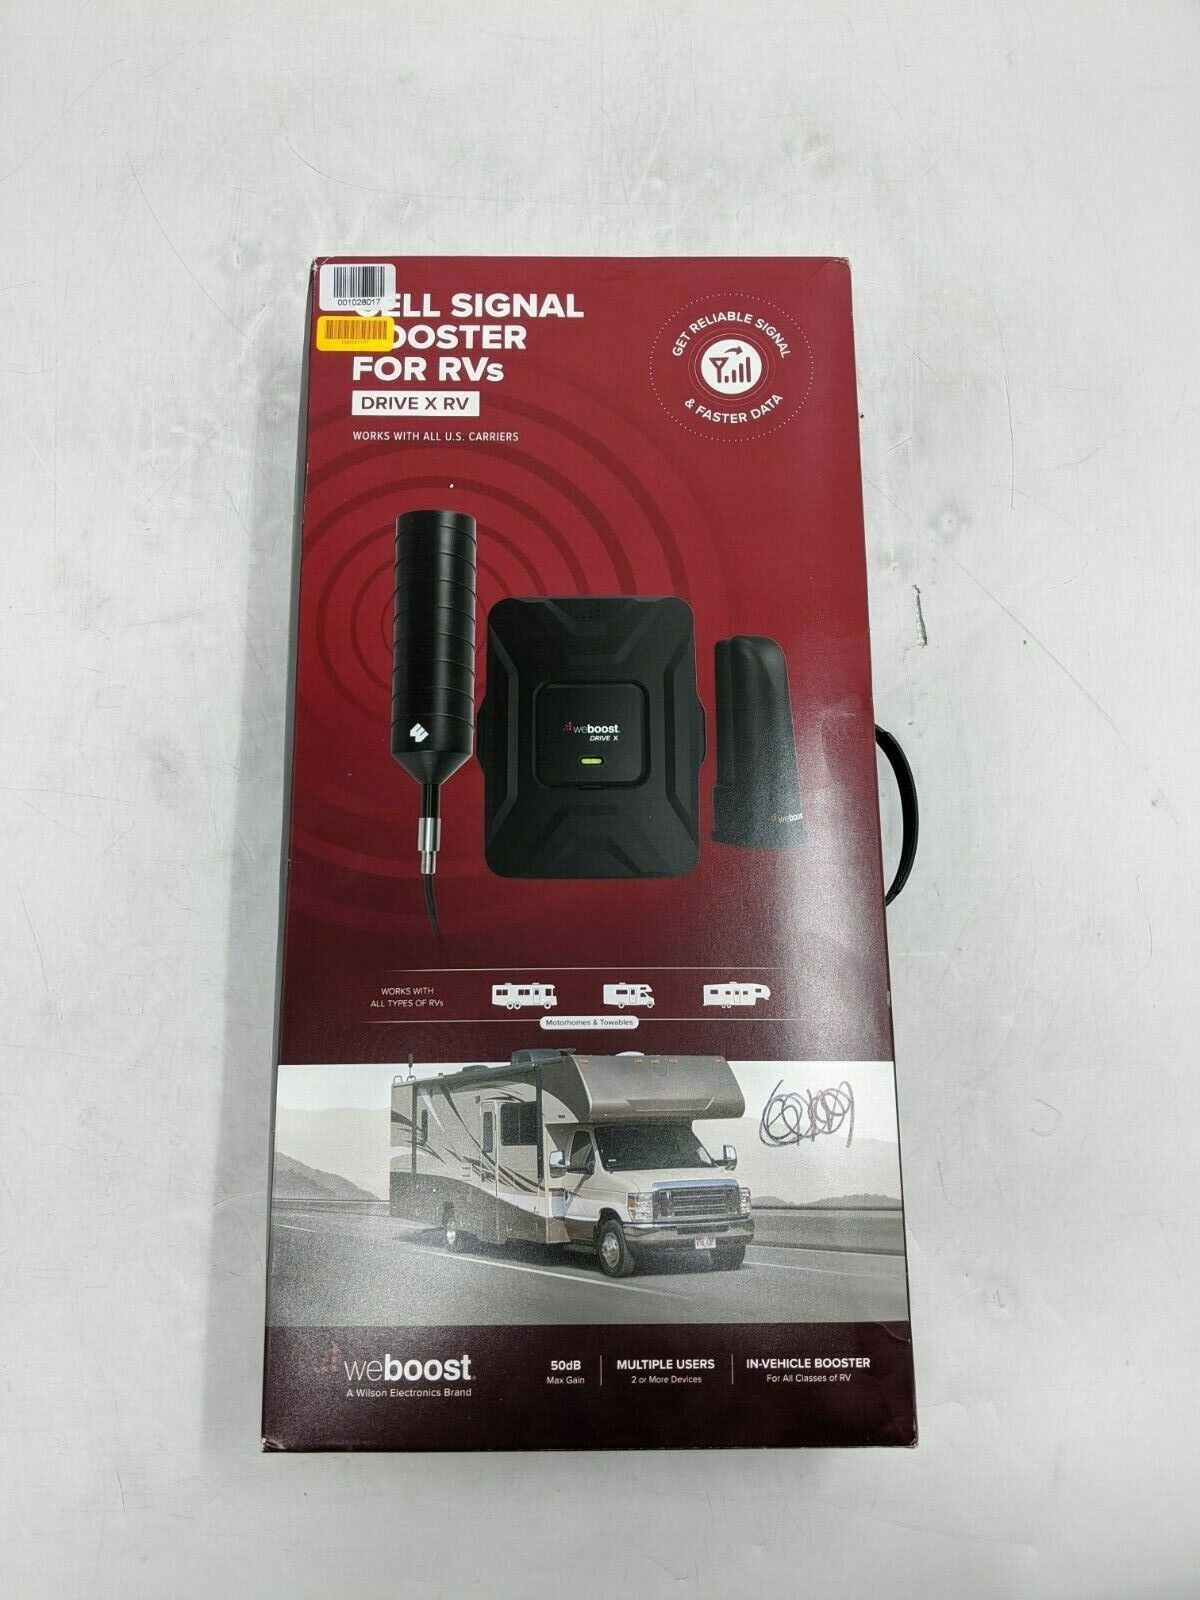 new drive x rv cell phone signal